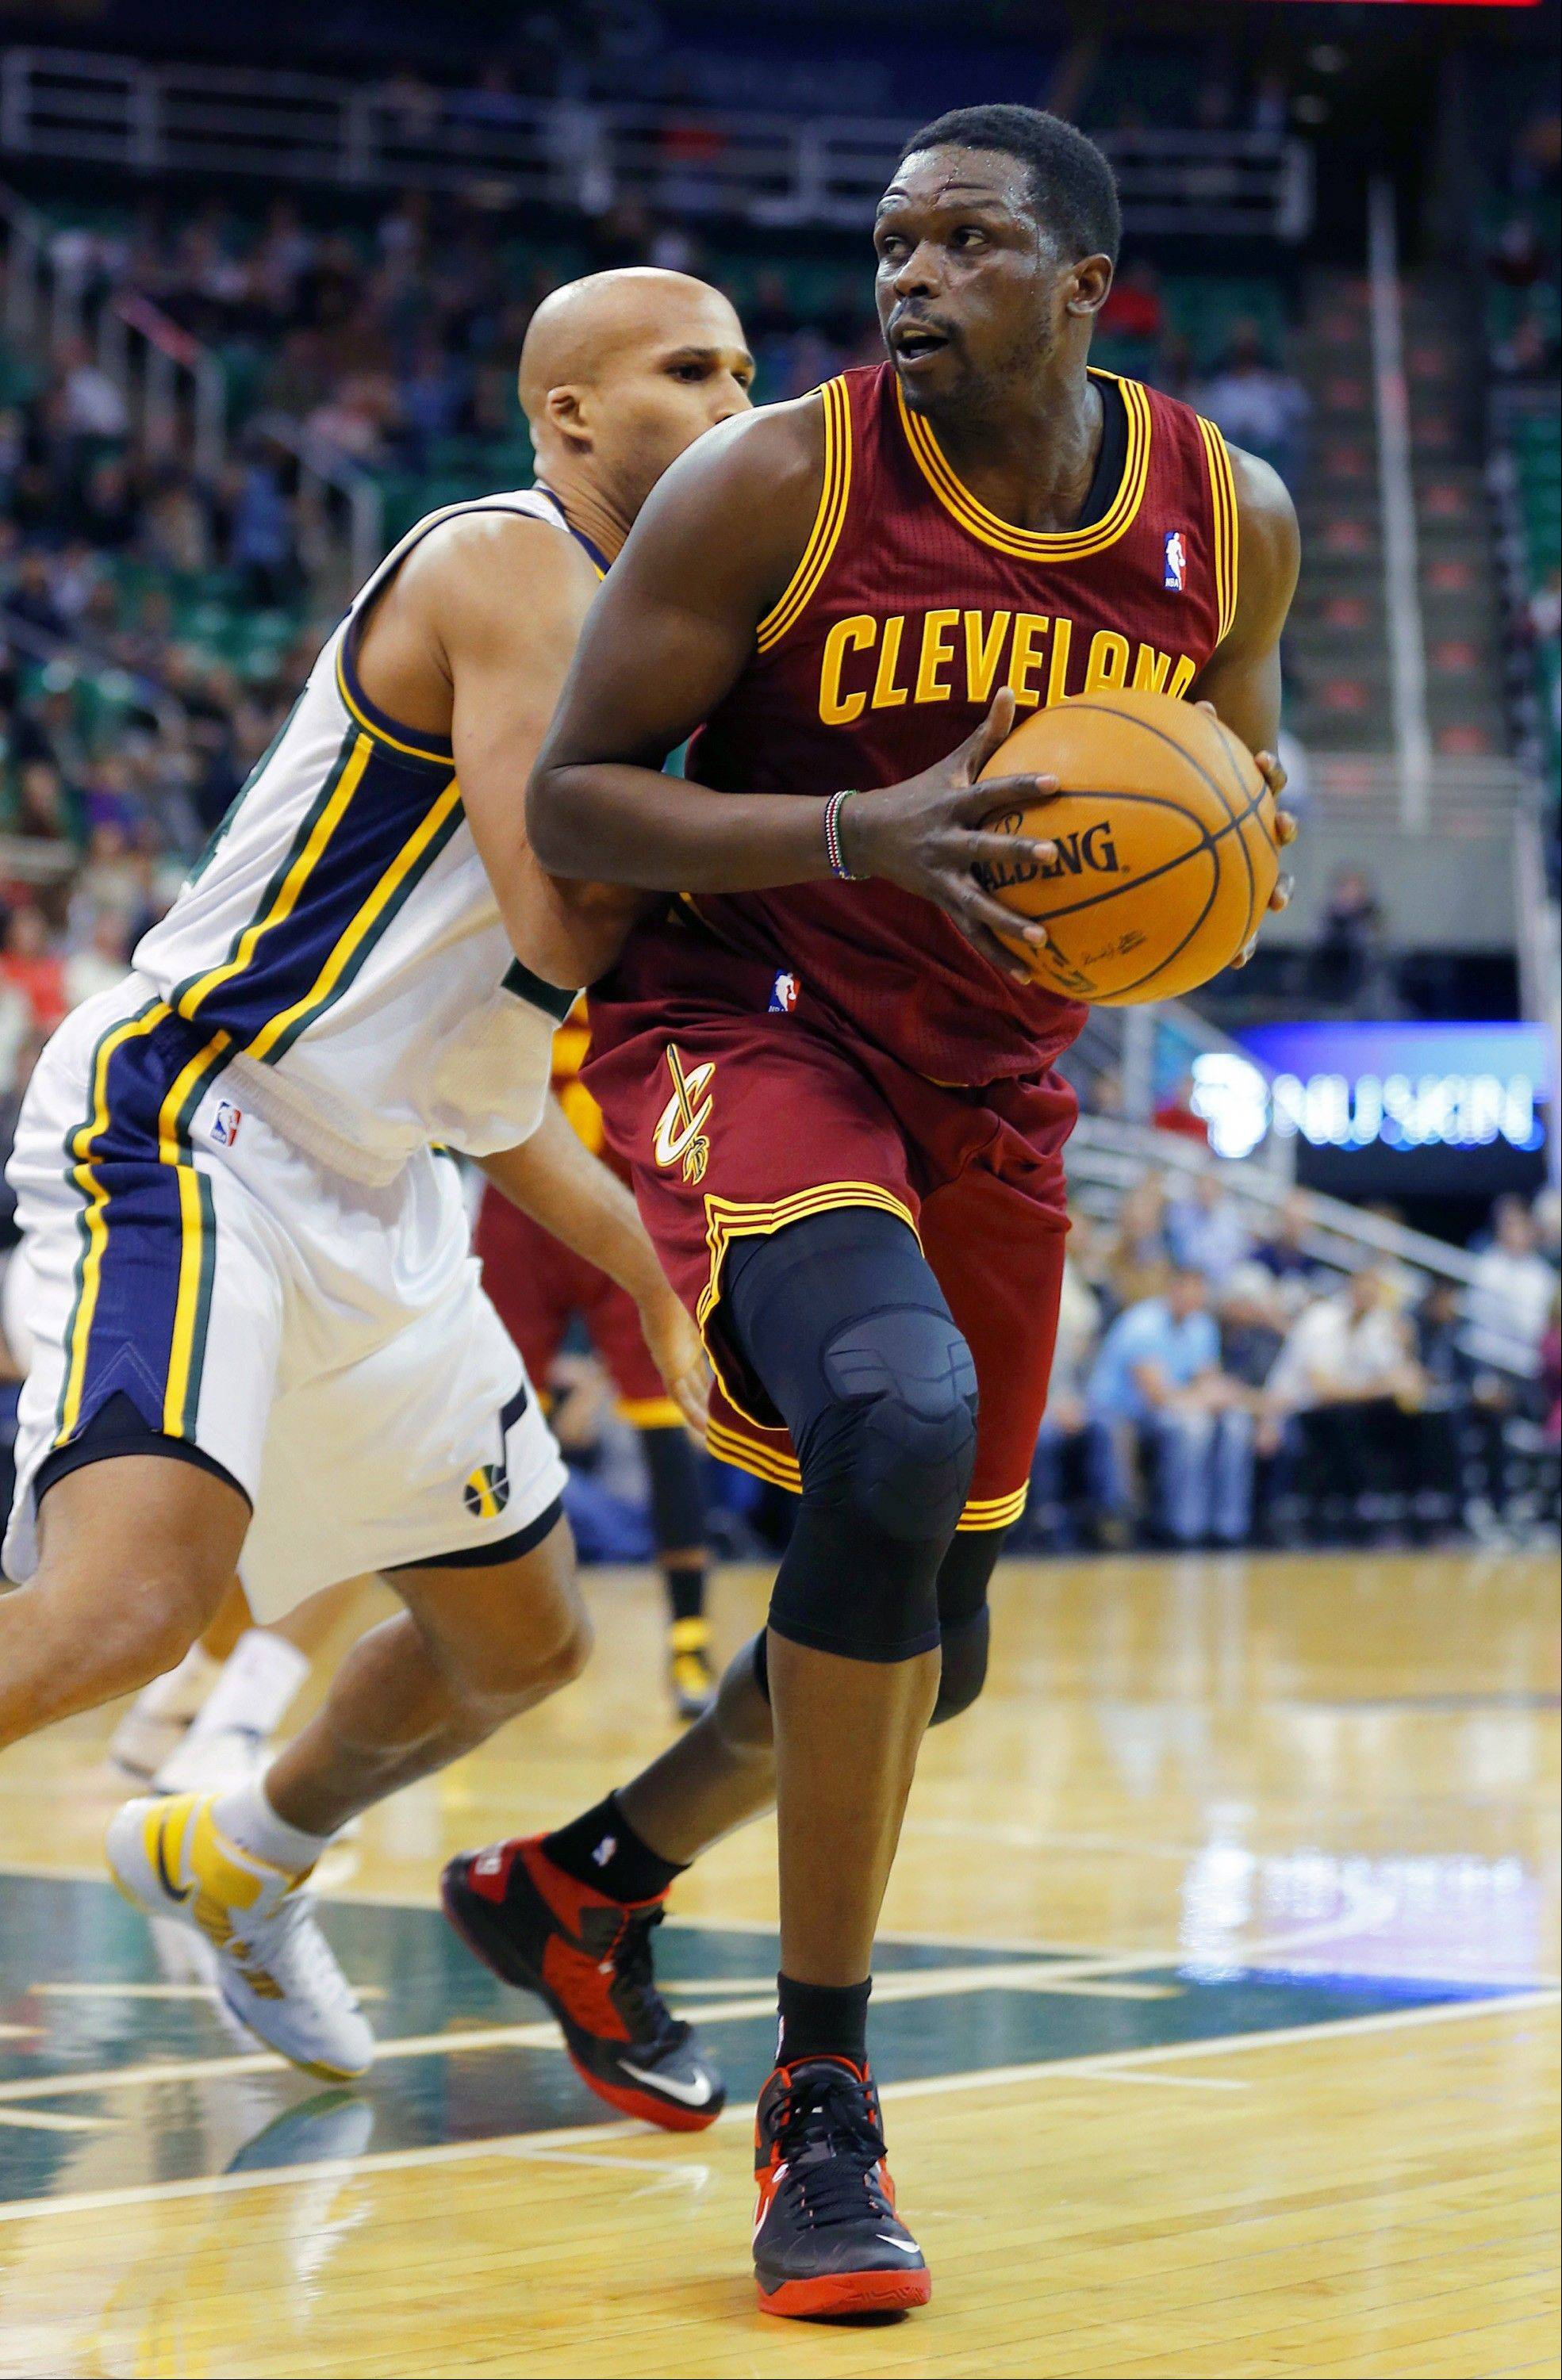 Cleveland Cavalier's Luol Deng, right, looks to shoot over Utah Jazz's Richard Jefferson during an NBA basketball game in Salt Lake City, Friday, Jan. 10, 2014.